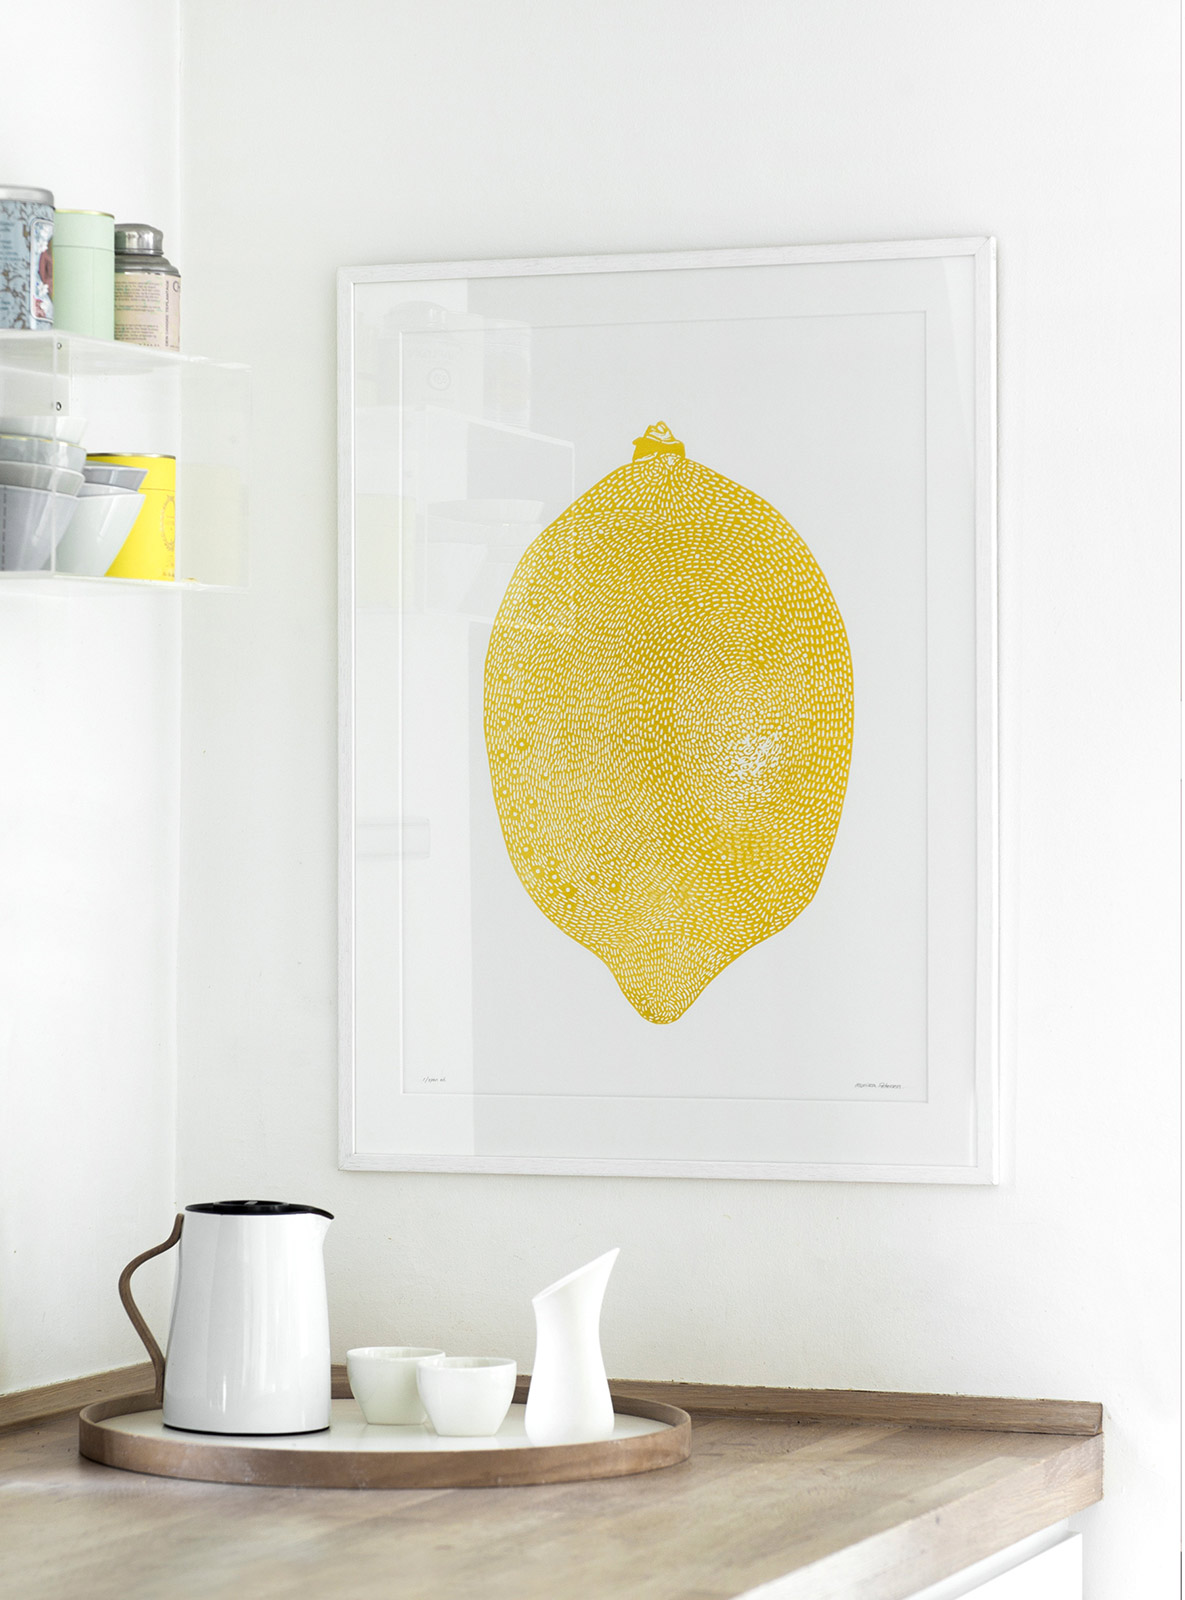 posters-prints, linocuts, aesthetic, colorful, figurative, graphical, monochrome, pop, still-life, botany, patterns, white, yellow, acrylic, paper, beautiful, contemporary-art, danish, decorative, design, farm, fruit, interior, interior-design, modern, modern-art, nordic, posters, pretty, prints, scandinavien, Buy original high quality art. Paintings, drawings, limited edition prints & posters by talented artists.